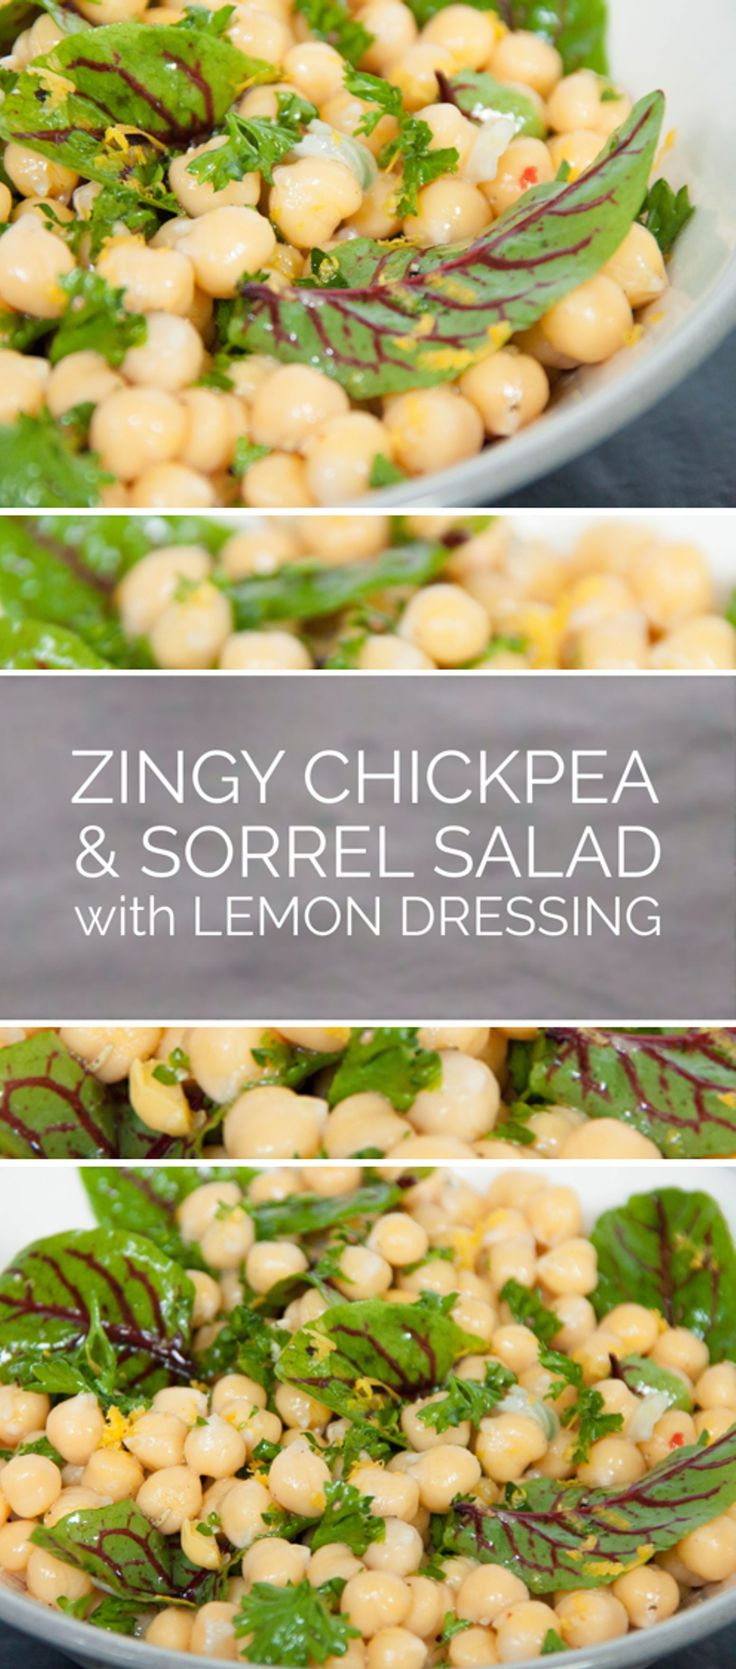 A great recipe for a chickpea and sorrel salad with zingy, lemony dressing.